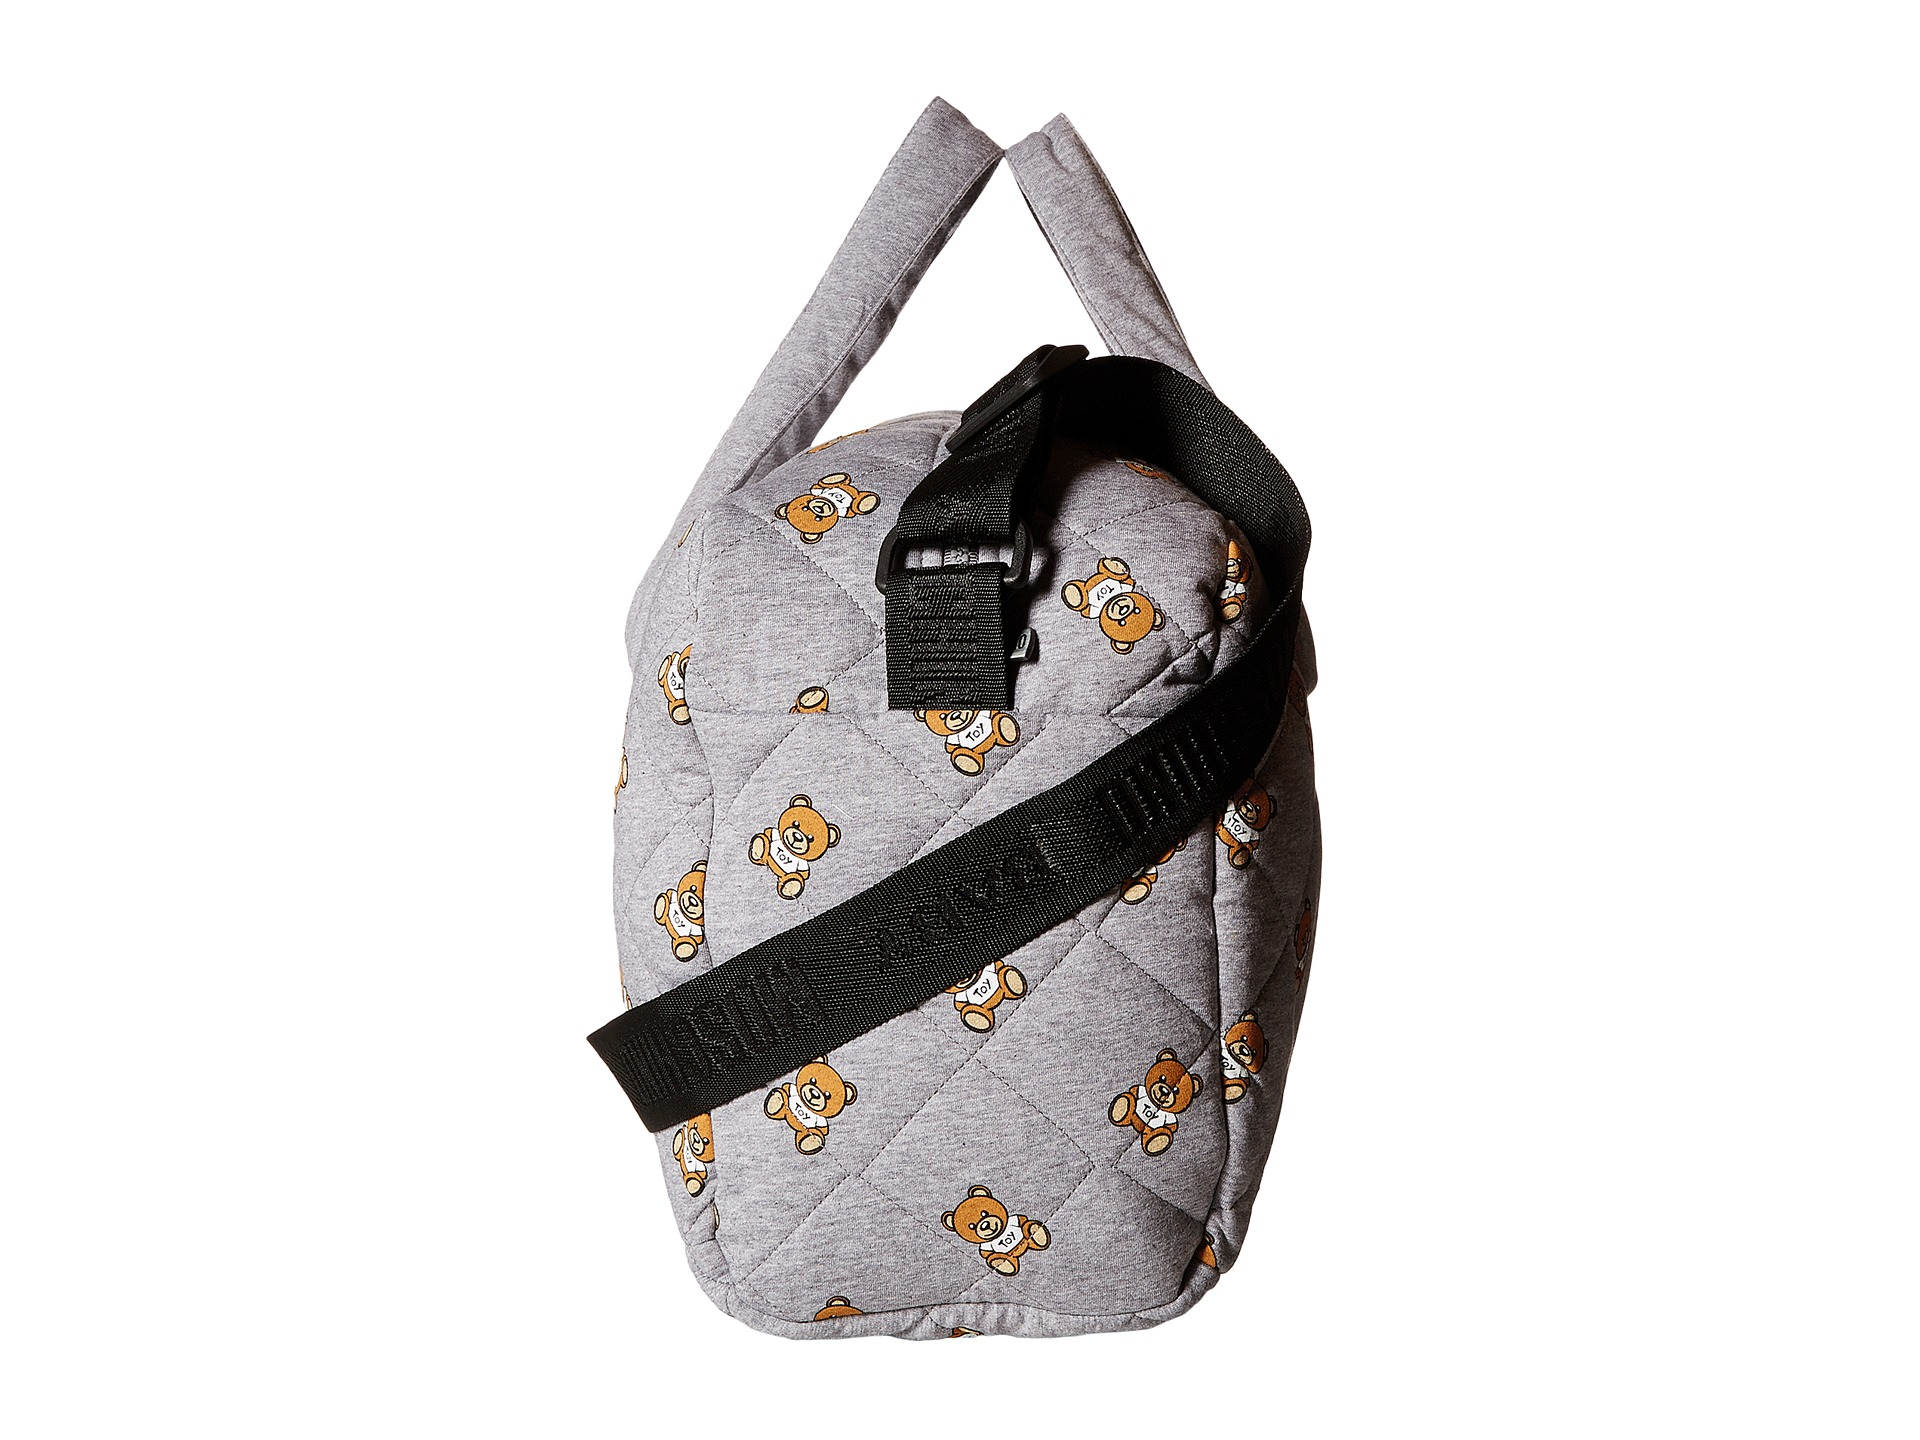 Kids Diaper Bag : Moschino kids jersey quilted diaper bag w all over teddy